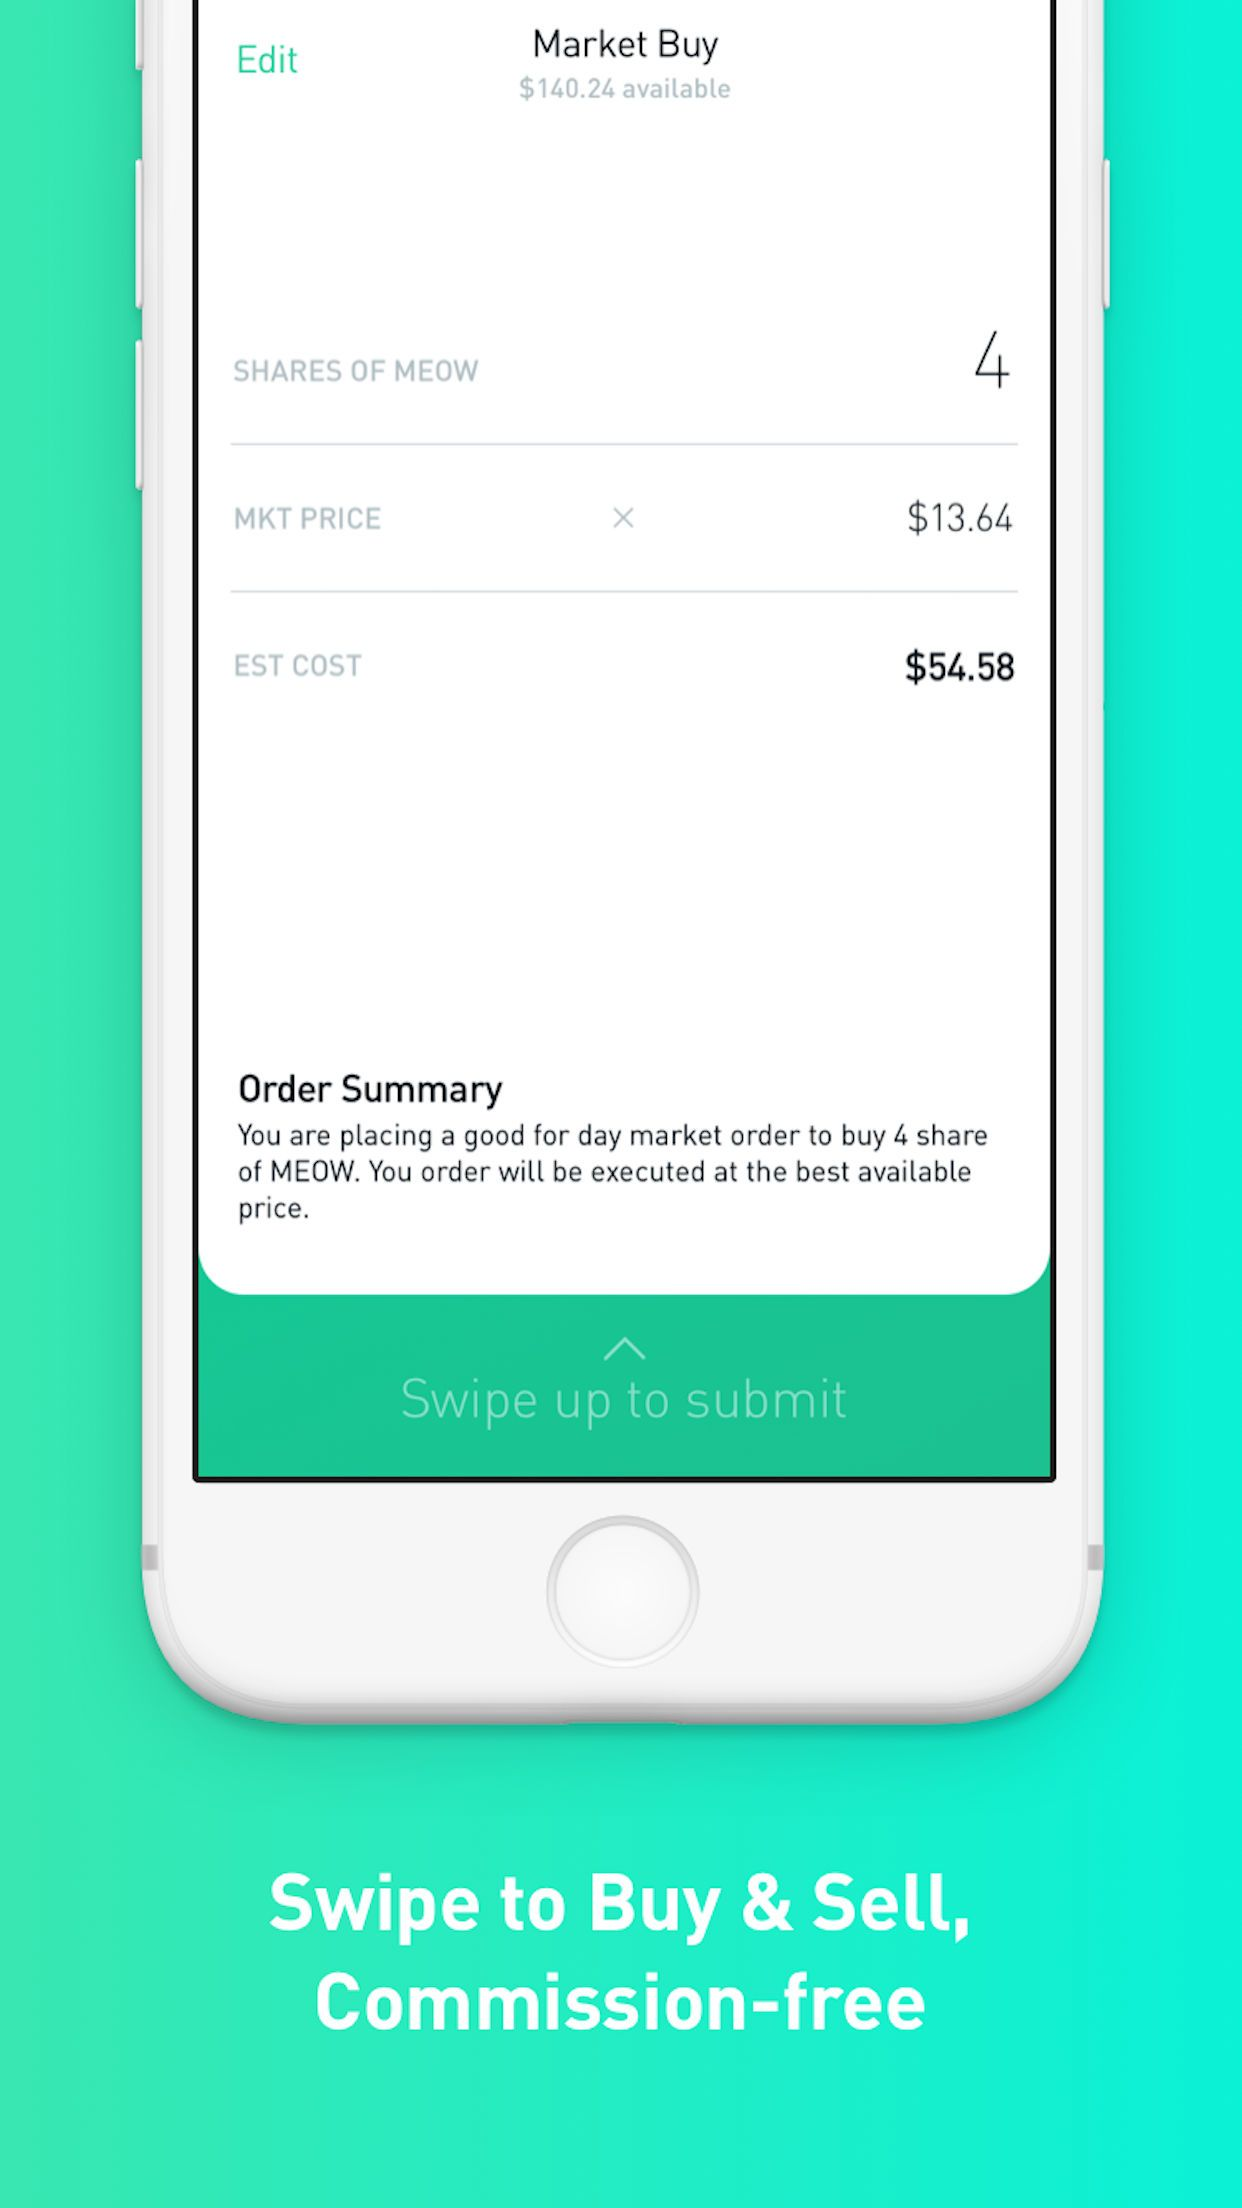 Pin by S Khan on My Saves Finance apps, Investing, Finance